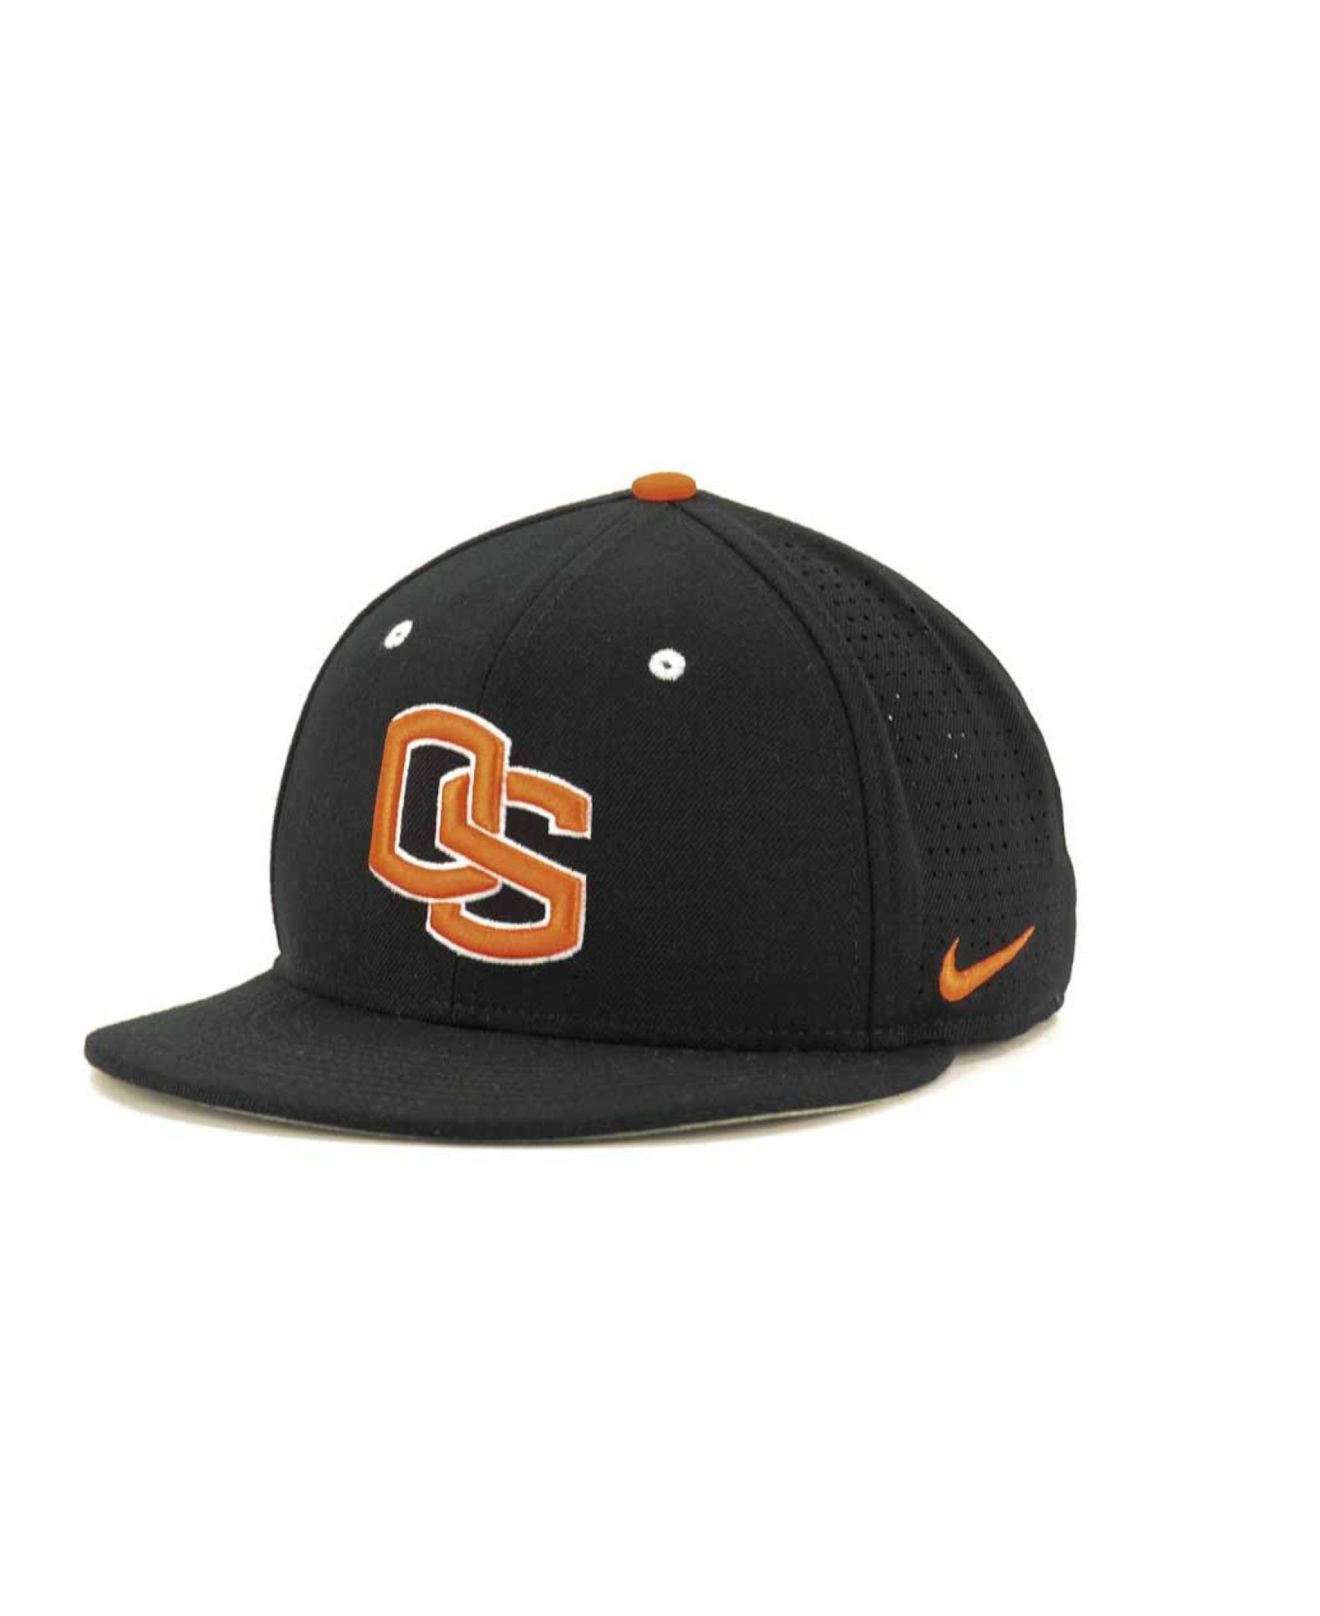 102e2593ac7 Lyst - Nike Oregon State Beavers Ncaa Authentic Vapor Fitted Cap in ...